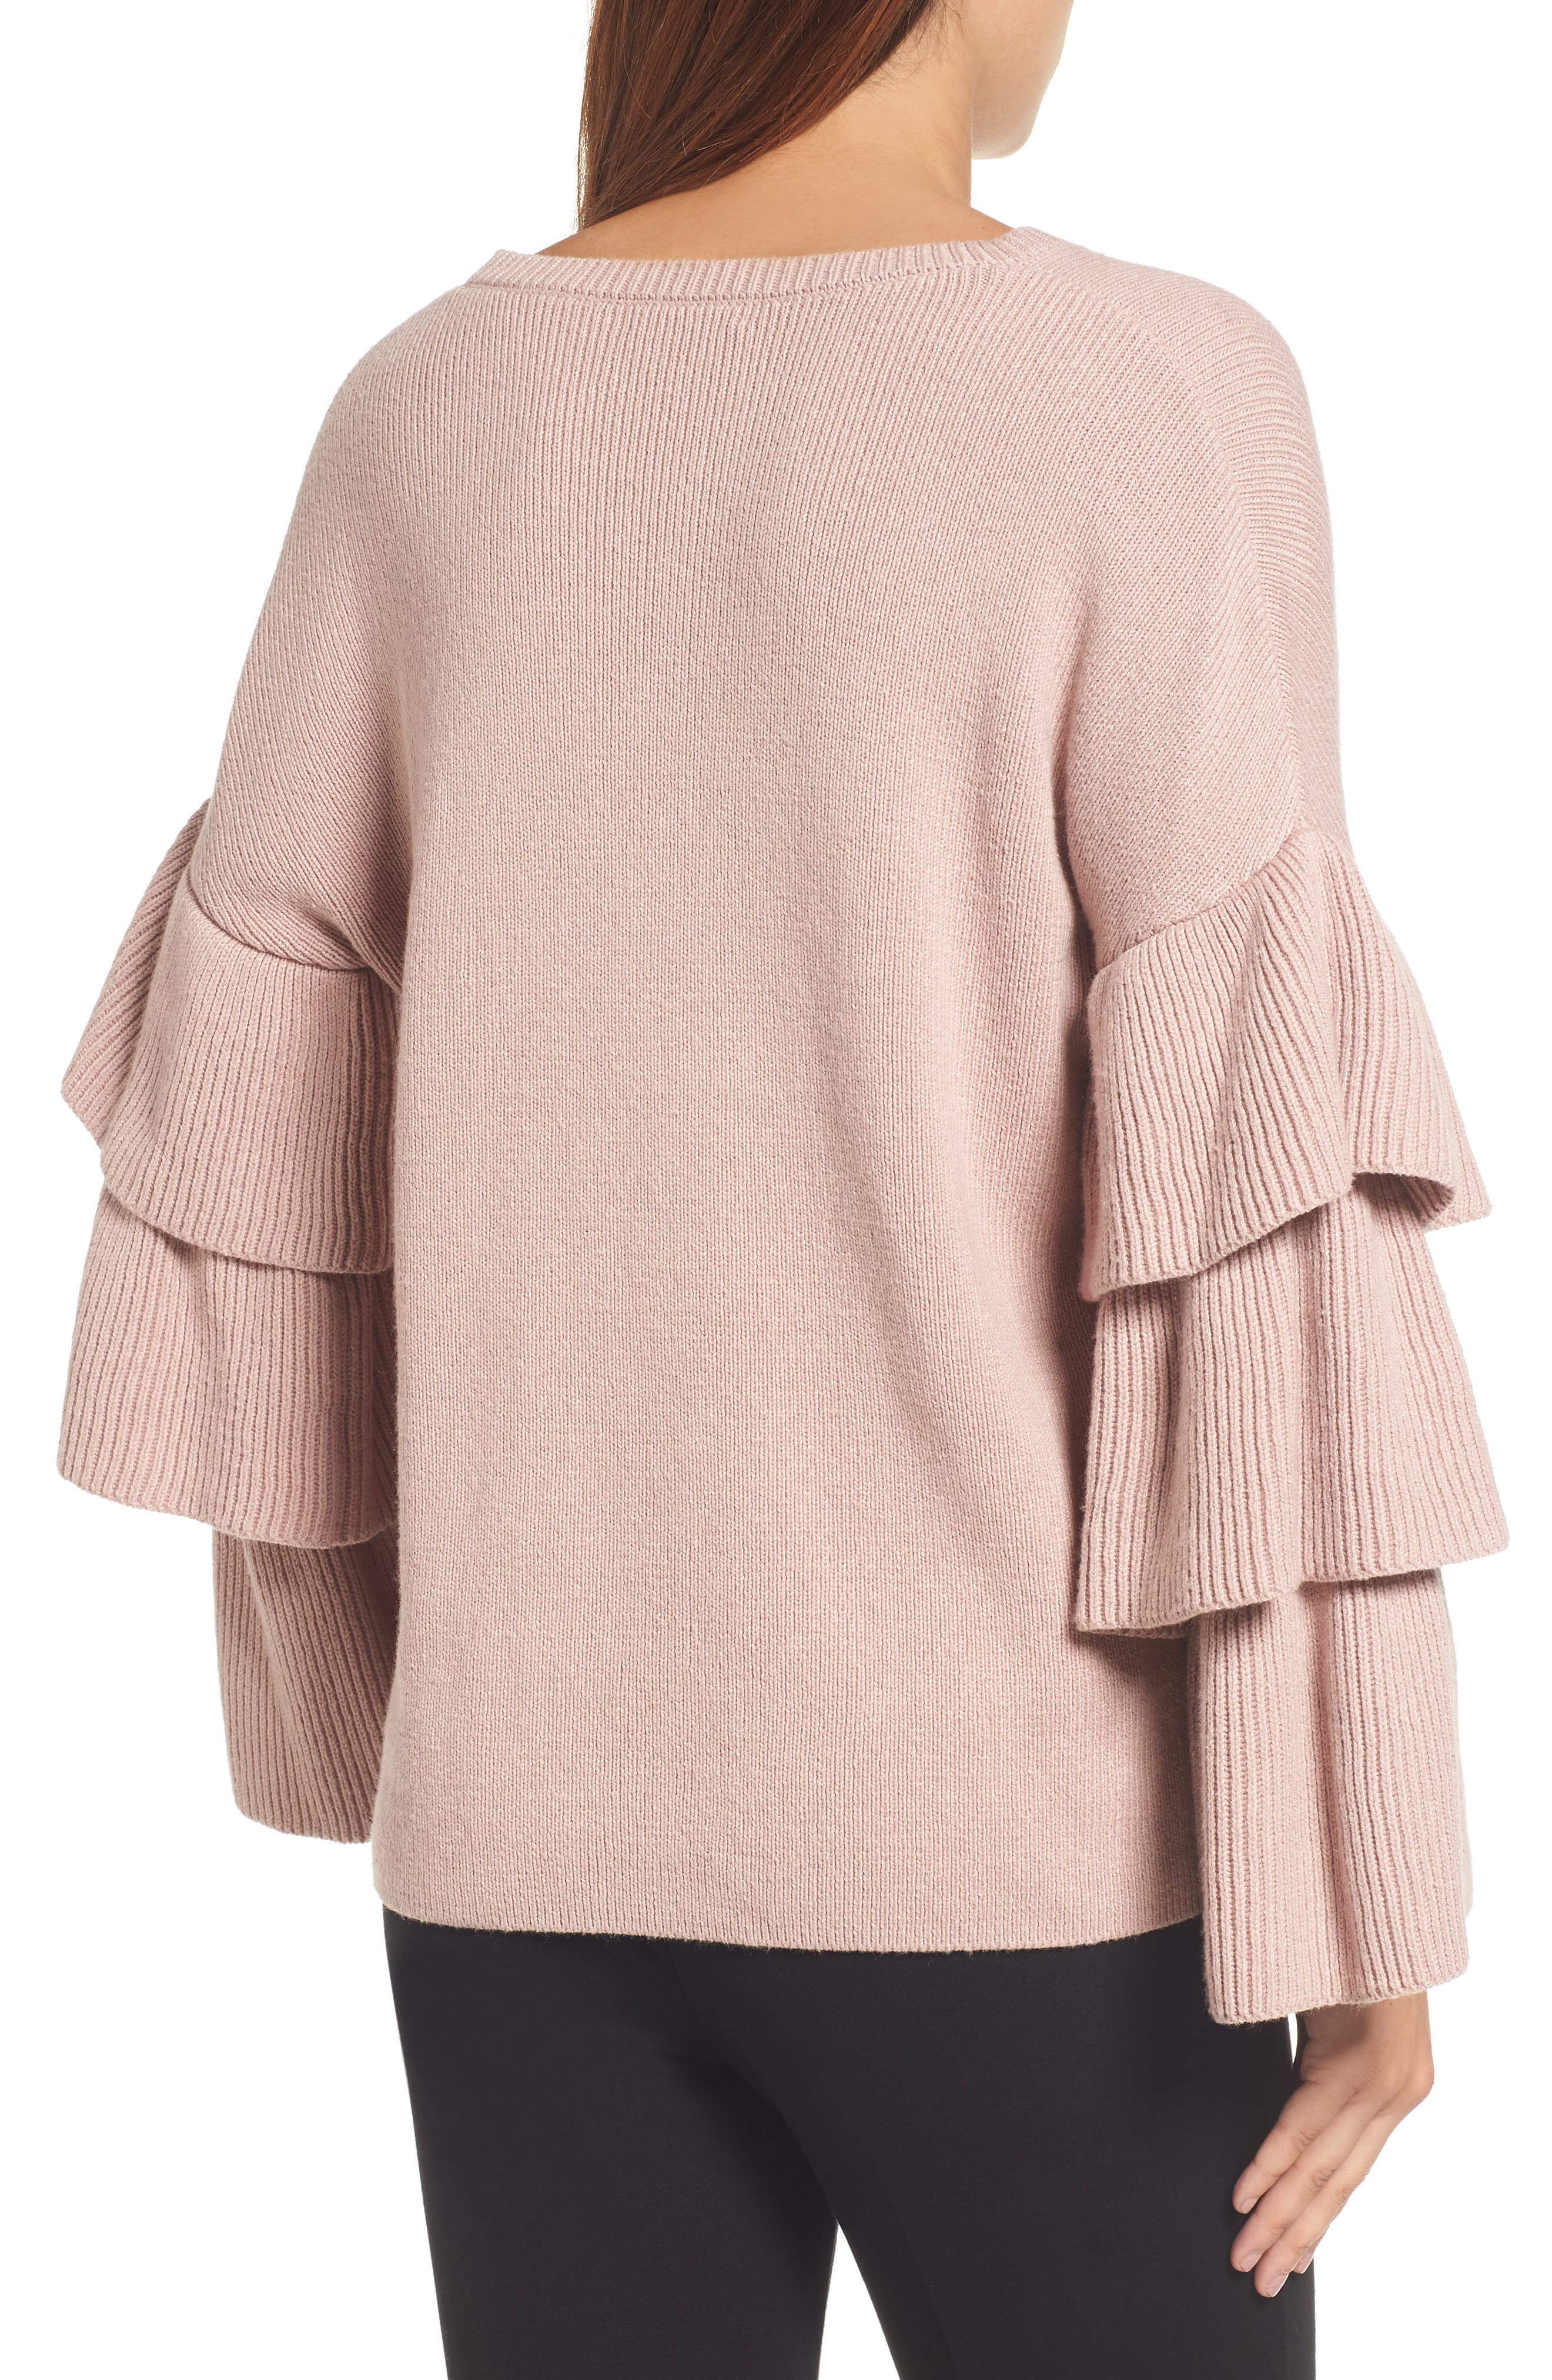 Ruffle Sleeve Sweater,                             Alternate thumbnail 5, color,                             Pink Adobe